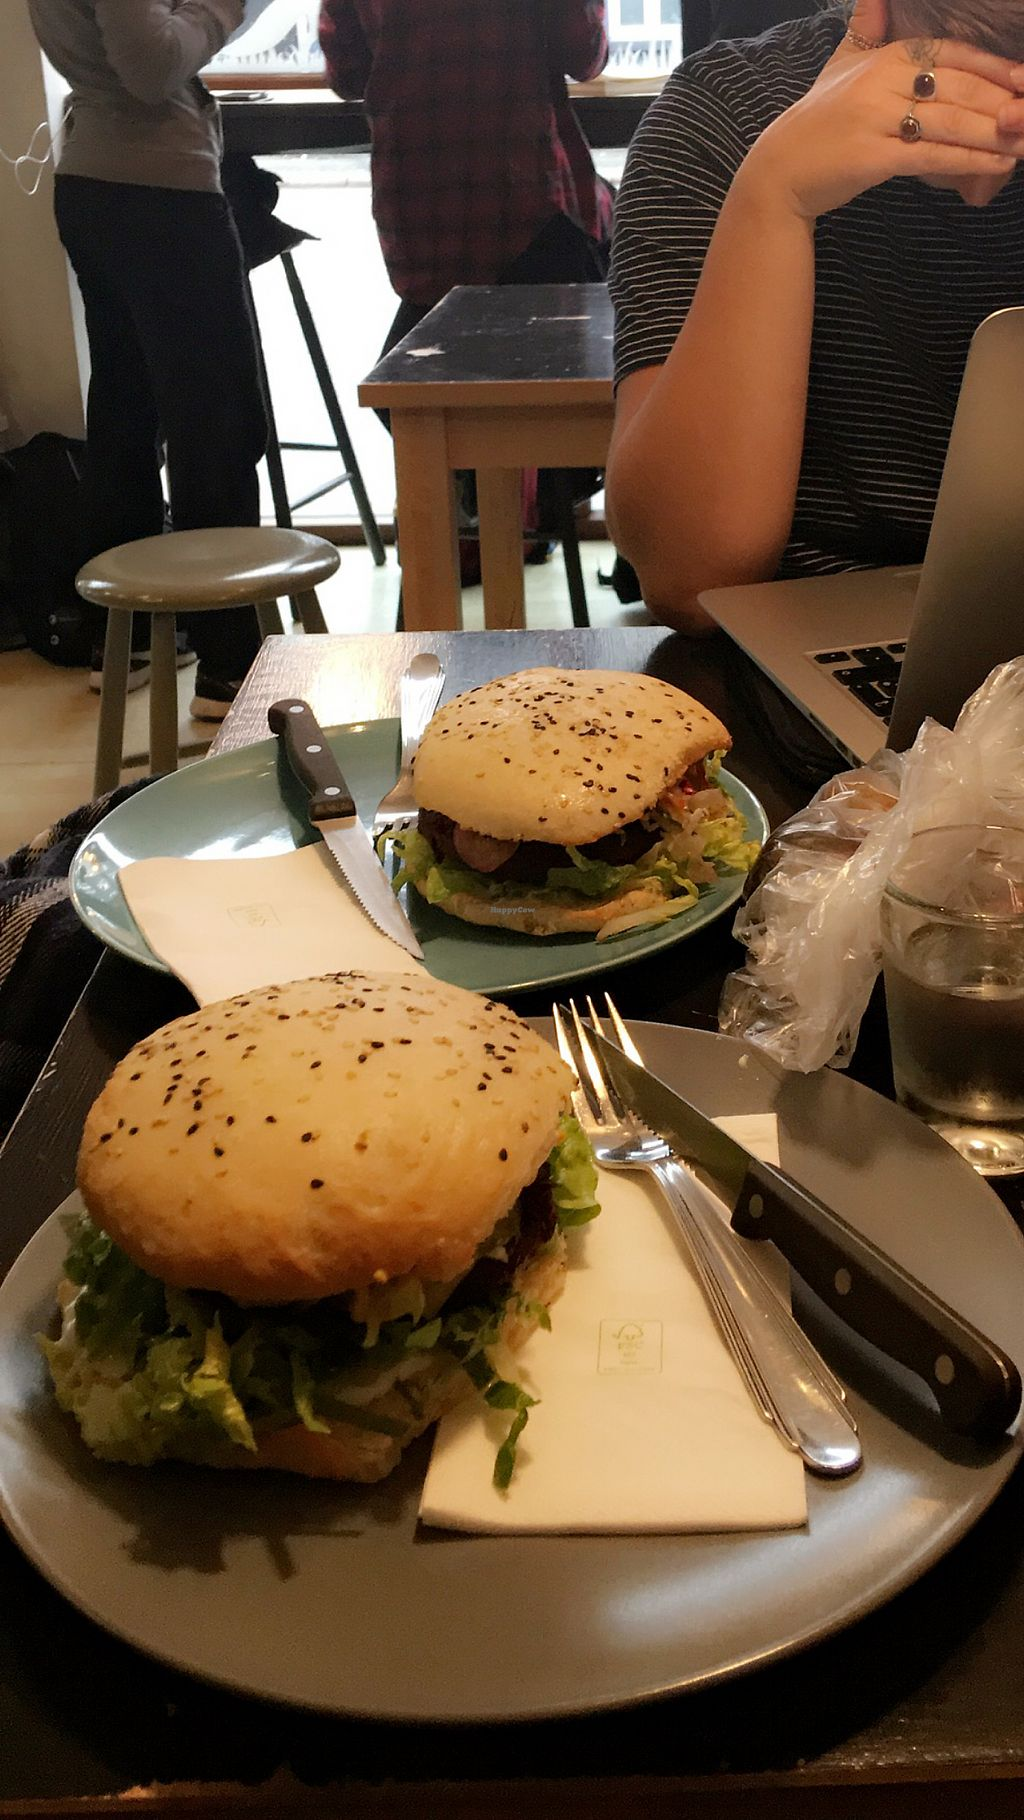 """Photo of Mikuna  by <a href=""""/members/profile/sofi3538"""">sofi3538</a> <br/>The city burger from mikuna  <br/> October 29, 2017  - <a href='/contact/abuse/image/46560/319836'>Report</a>"""